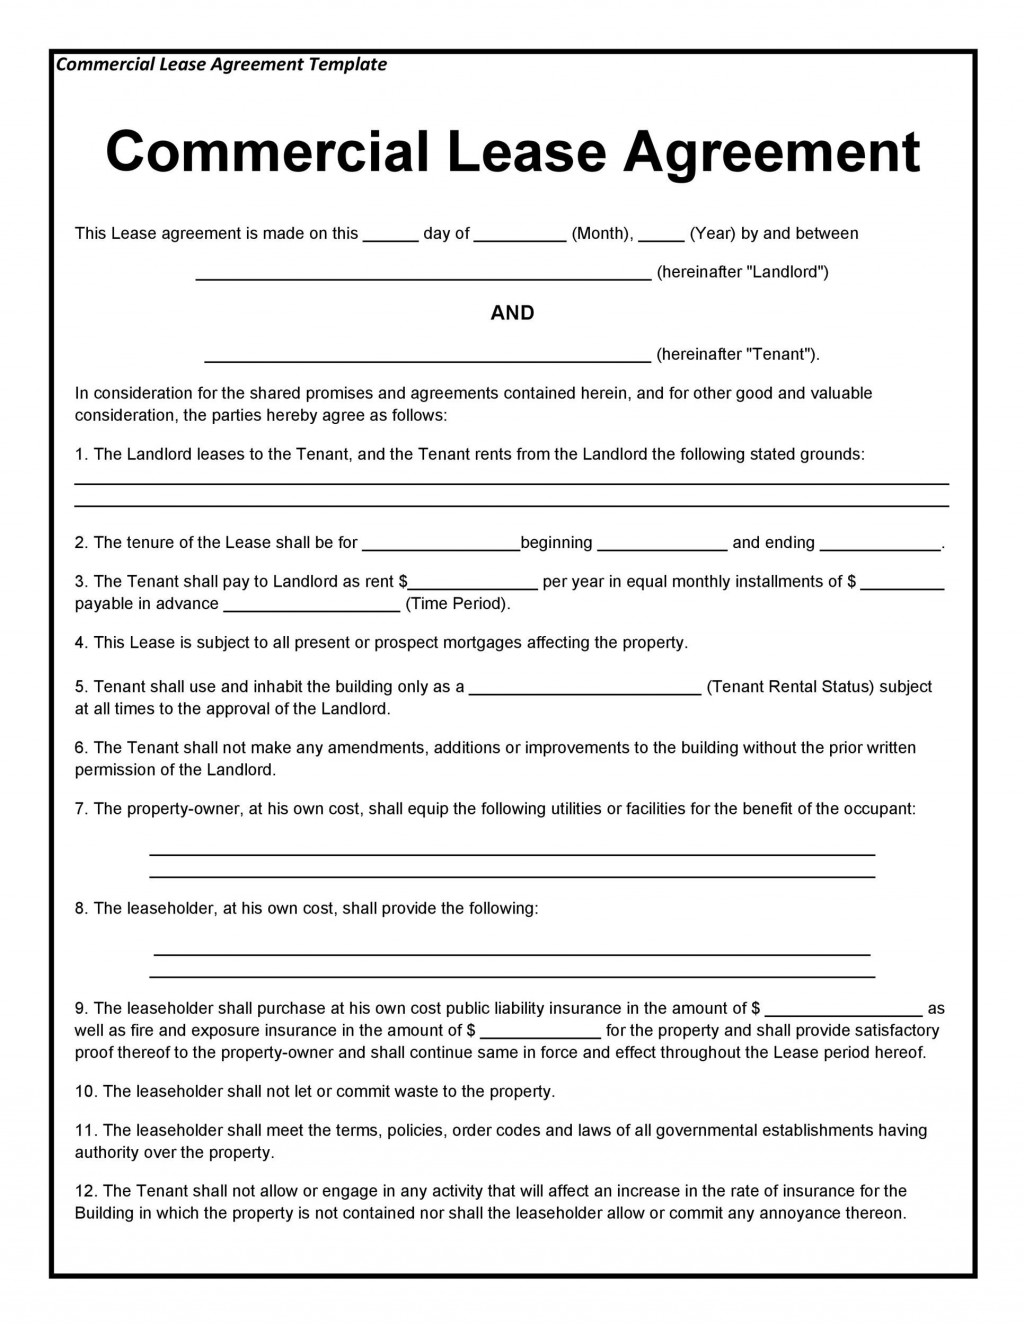 004 Top Rental Lease Template Free Download High Resolution  California Agreement Florida Word FormatLarge